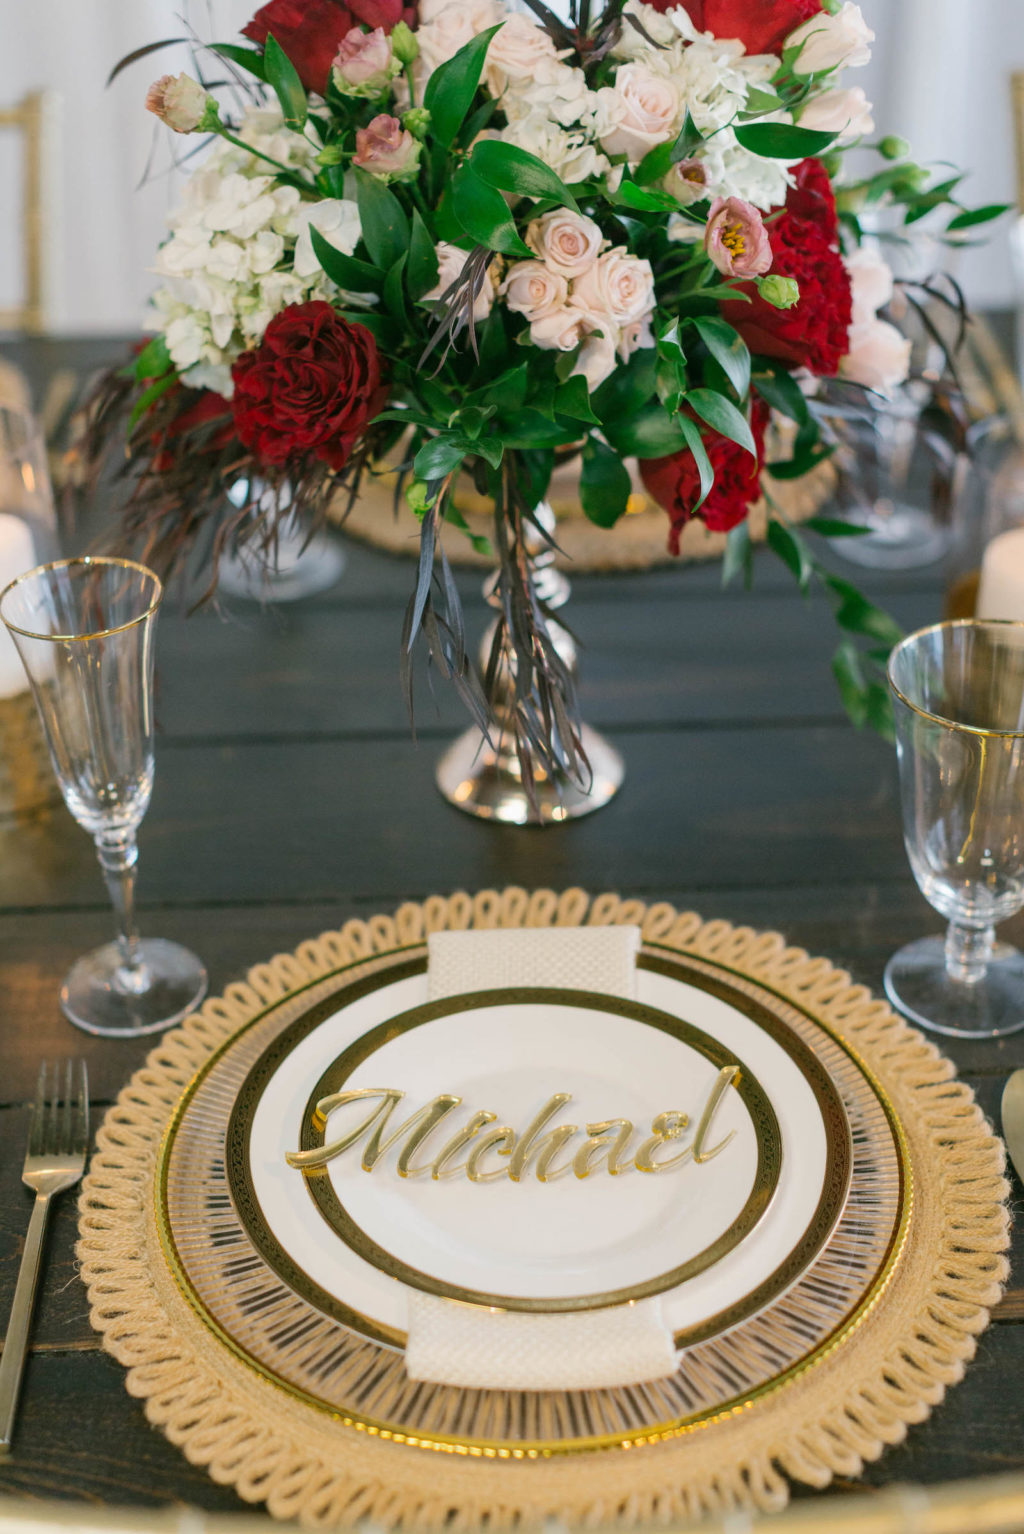 Romantic Red Low Centerpieces with Gold Chargers and Personalized Acrylic Die Cut Name Cards Styled with Love Influencer Wedding | St. Pete Beach Wedding Venue Bellwether Beach Resort